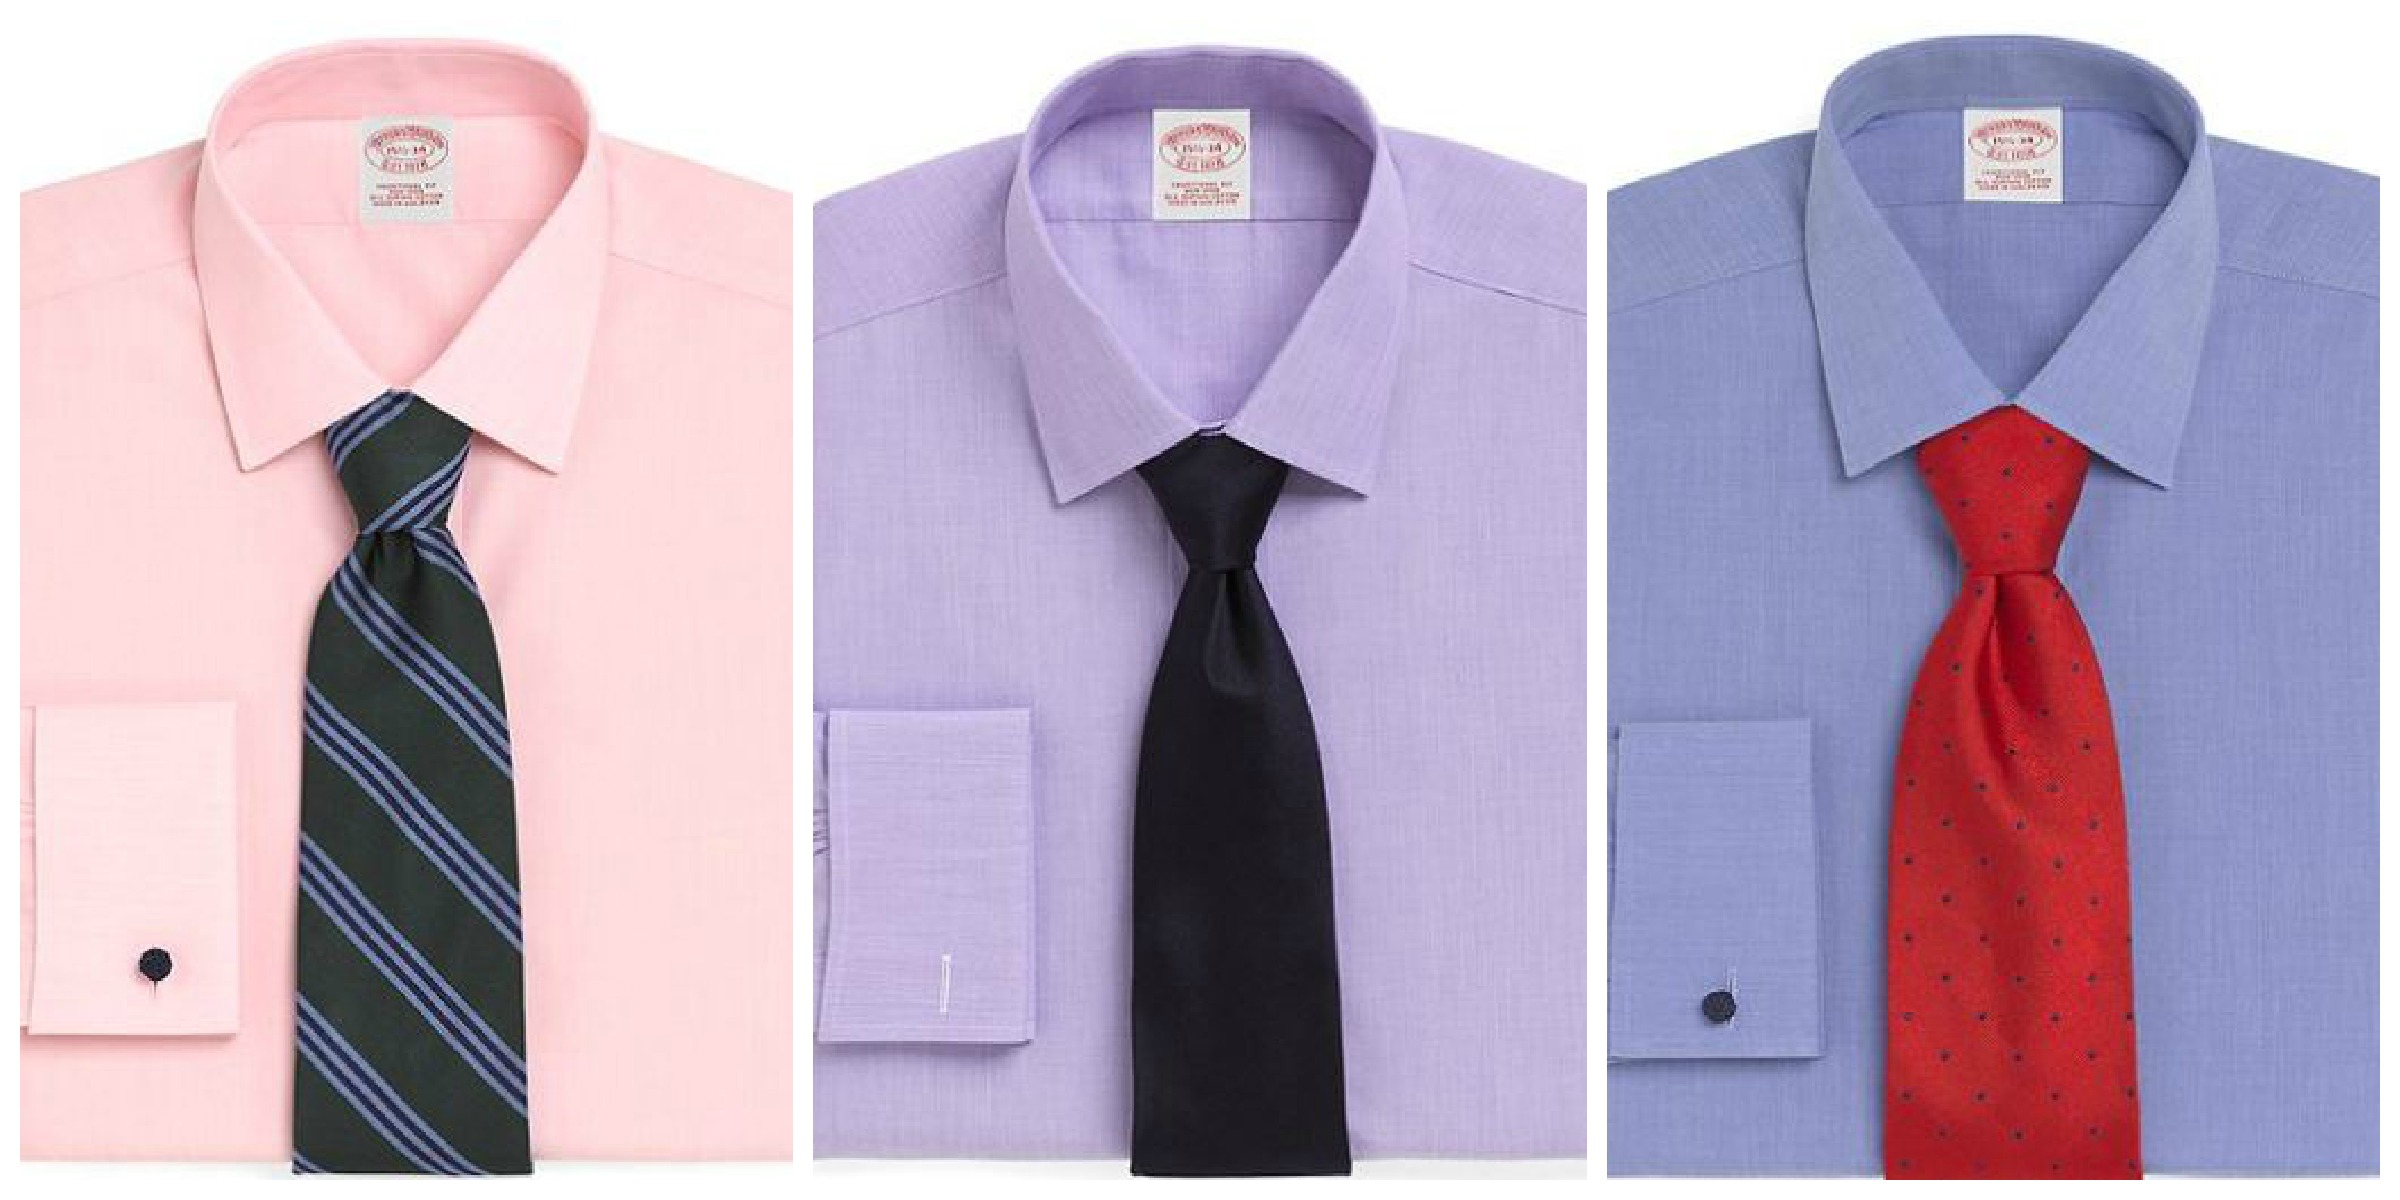 Mens Fashion Choose Shirts To Flatter Your Skin Tone Cocktails